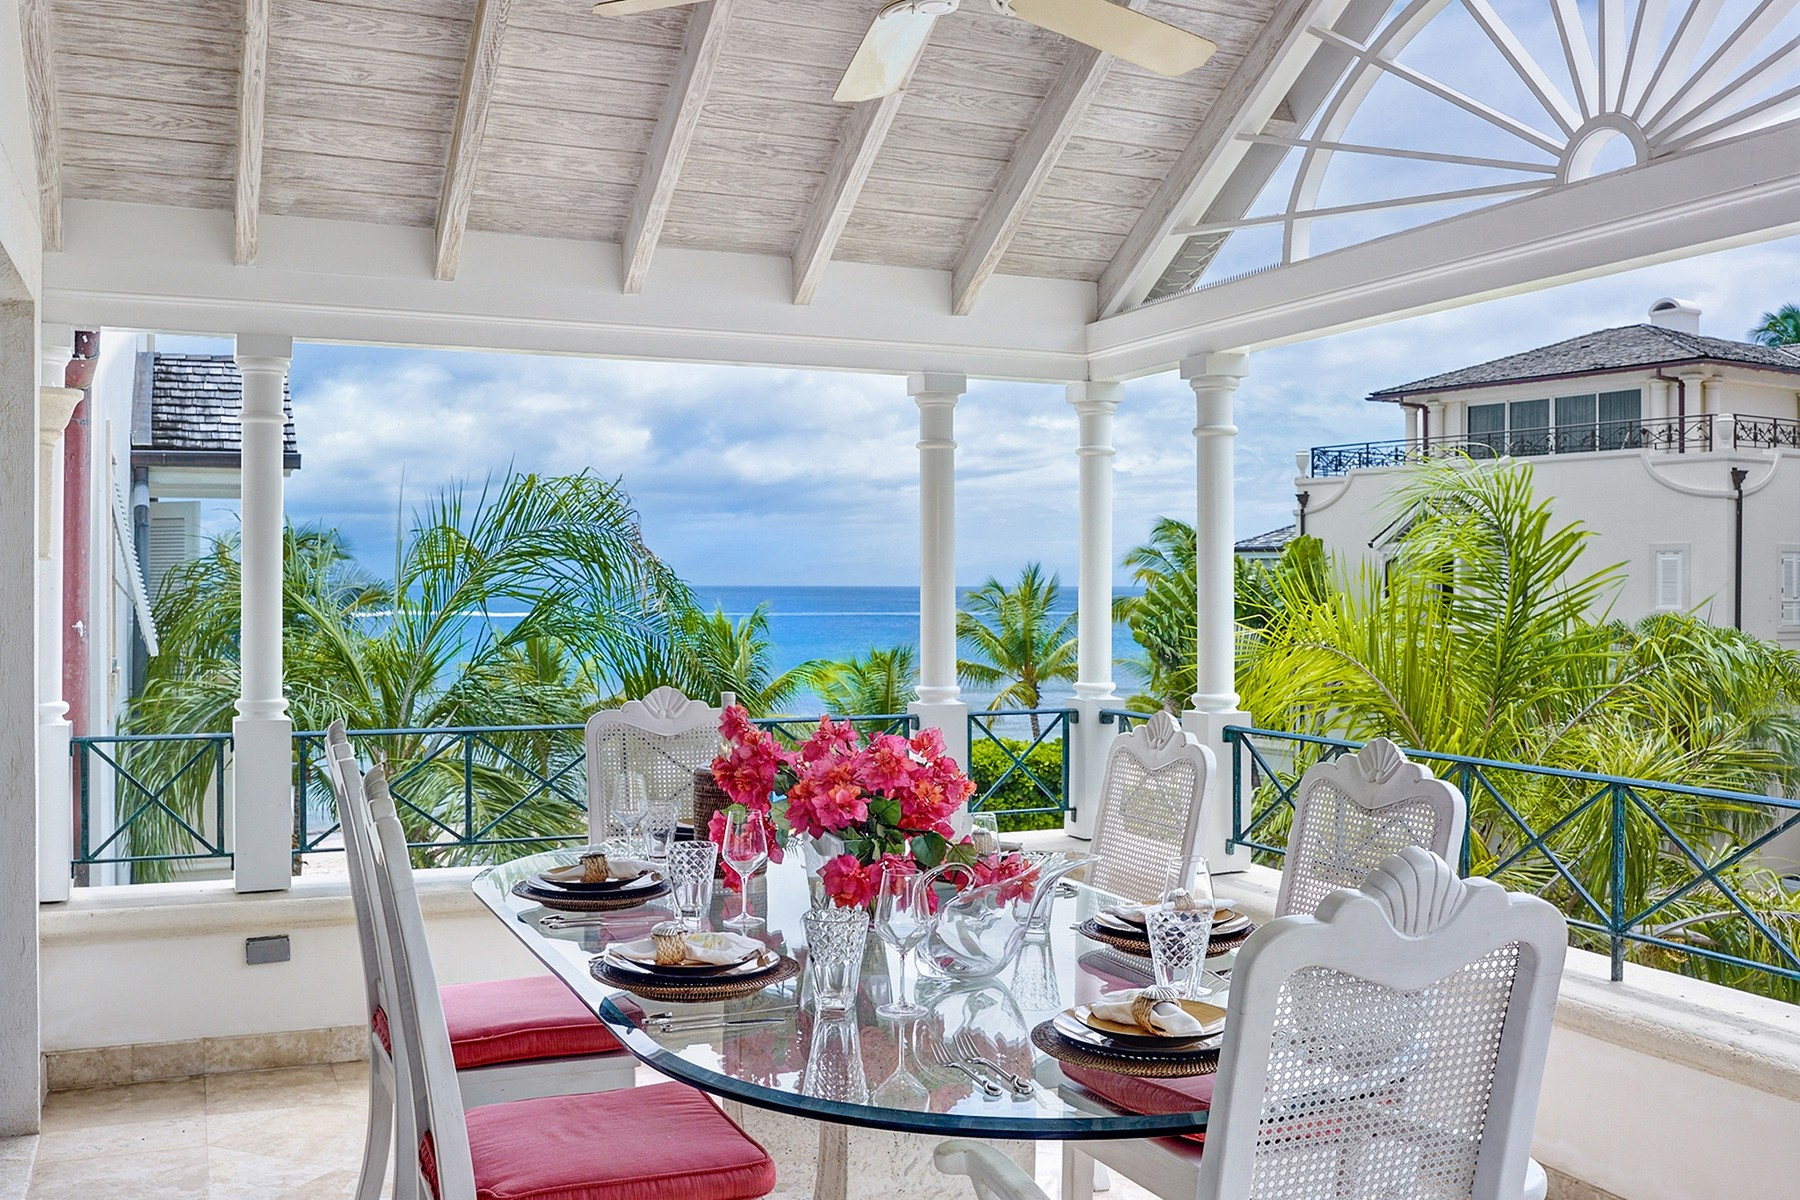 Residenza monofamiliare In affitto in Speightstown, Saint Peter, Saint Peter   , Barbados